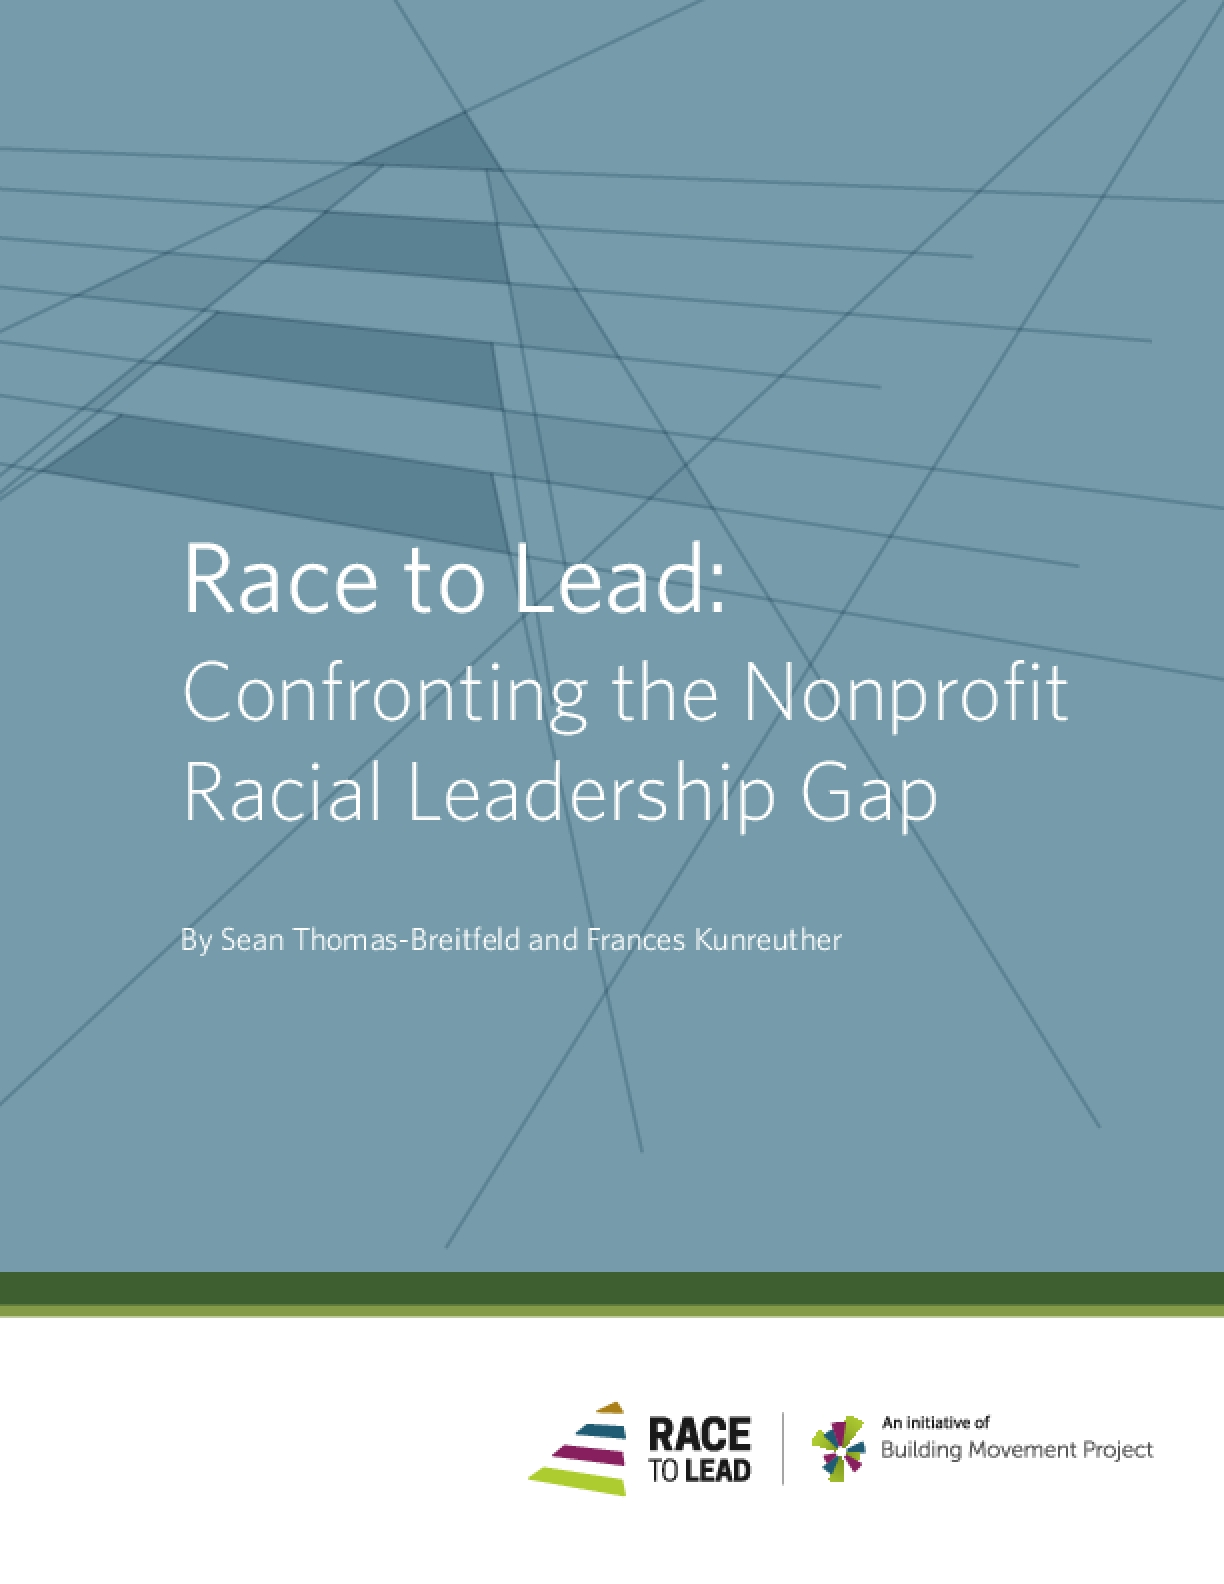 Race to Lead: Confronting the Nonprofit Racial Leadership Gap